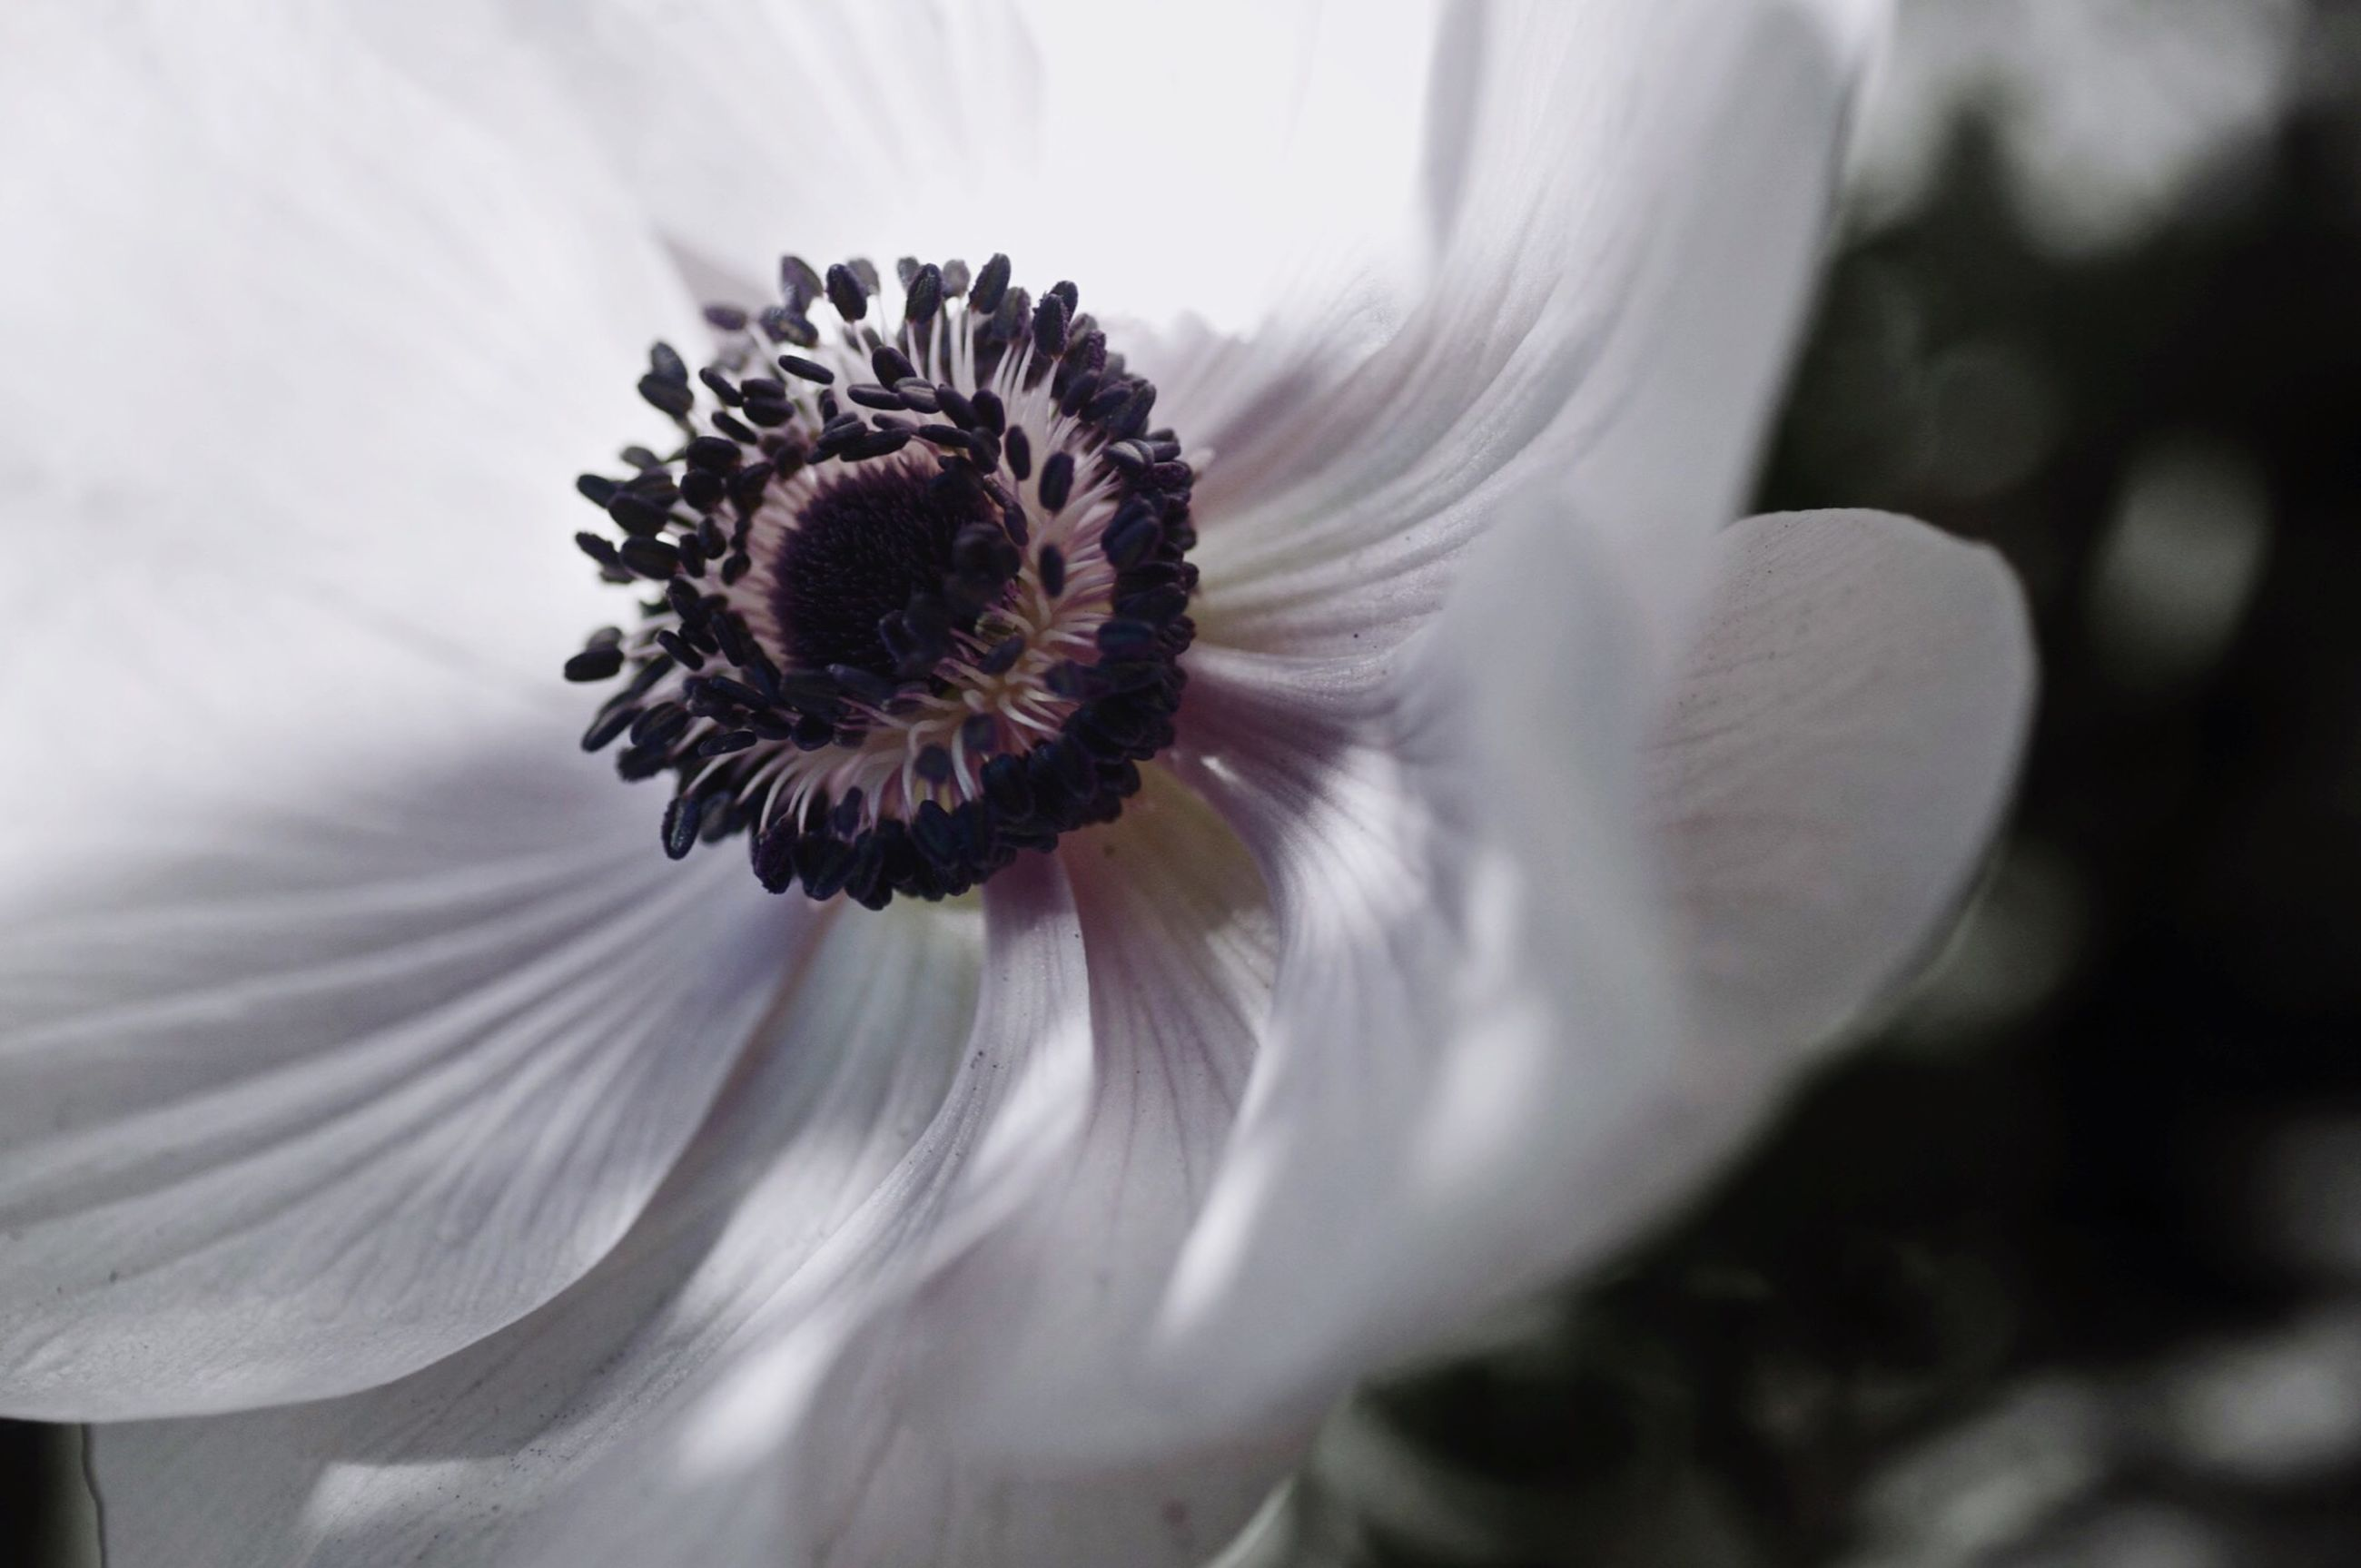 flower, petal, flower head, fragility, freshness, single flower, pollen, beauty in nature, close-up, growth, blooming, nature, focus on foreground, in bloom, plant, stamen, white color, no people, day, blossom